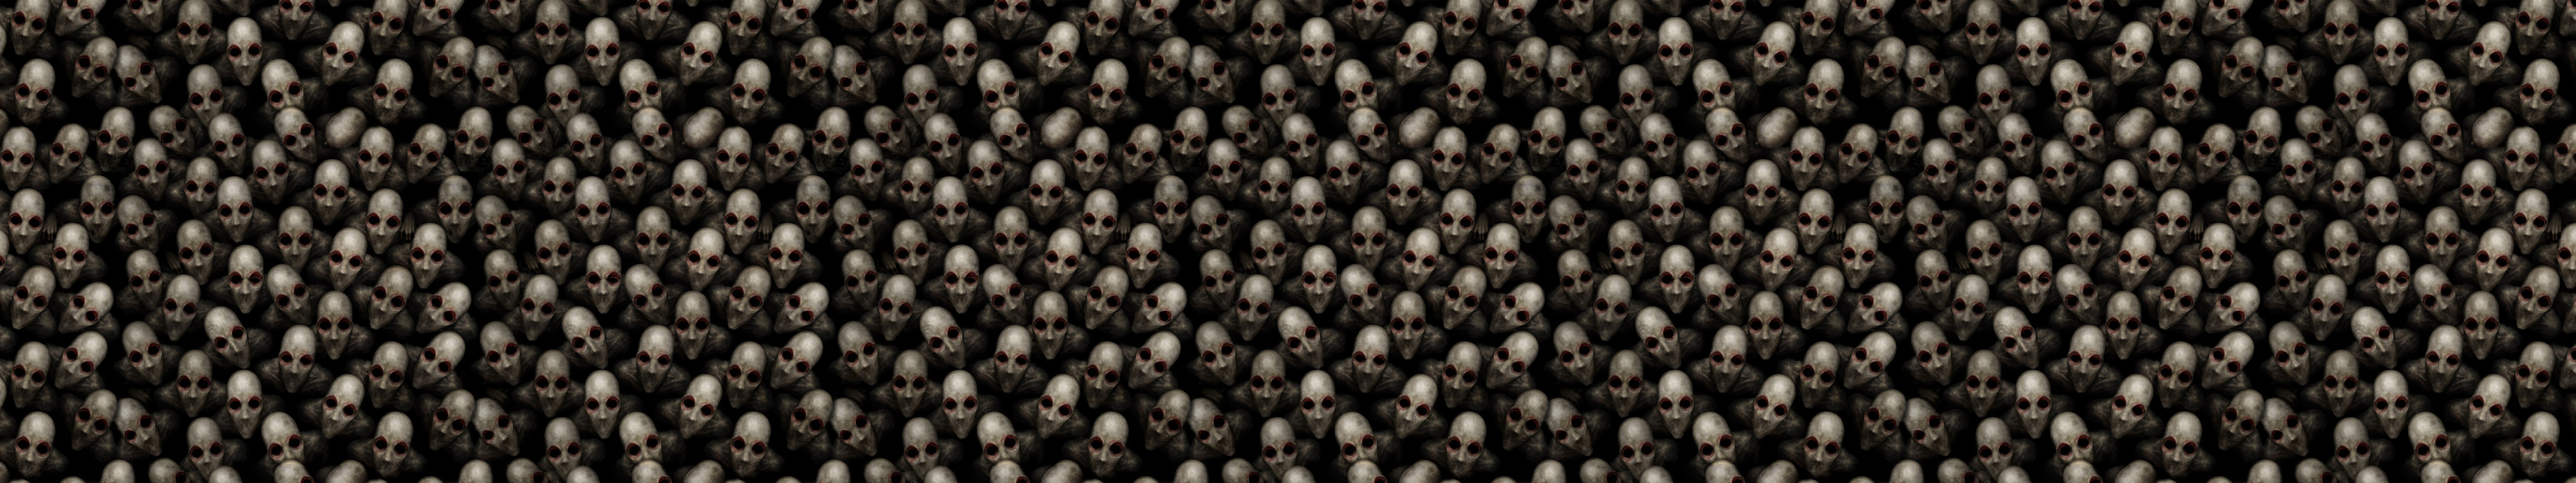 Creepy Hd Wallpaper Background Image 5760x1080 Id 442703 Wallpaper Abyss